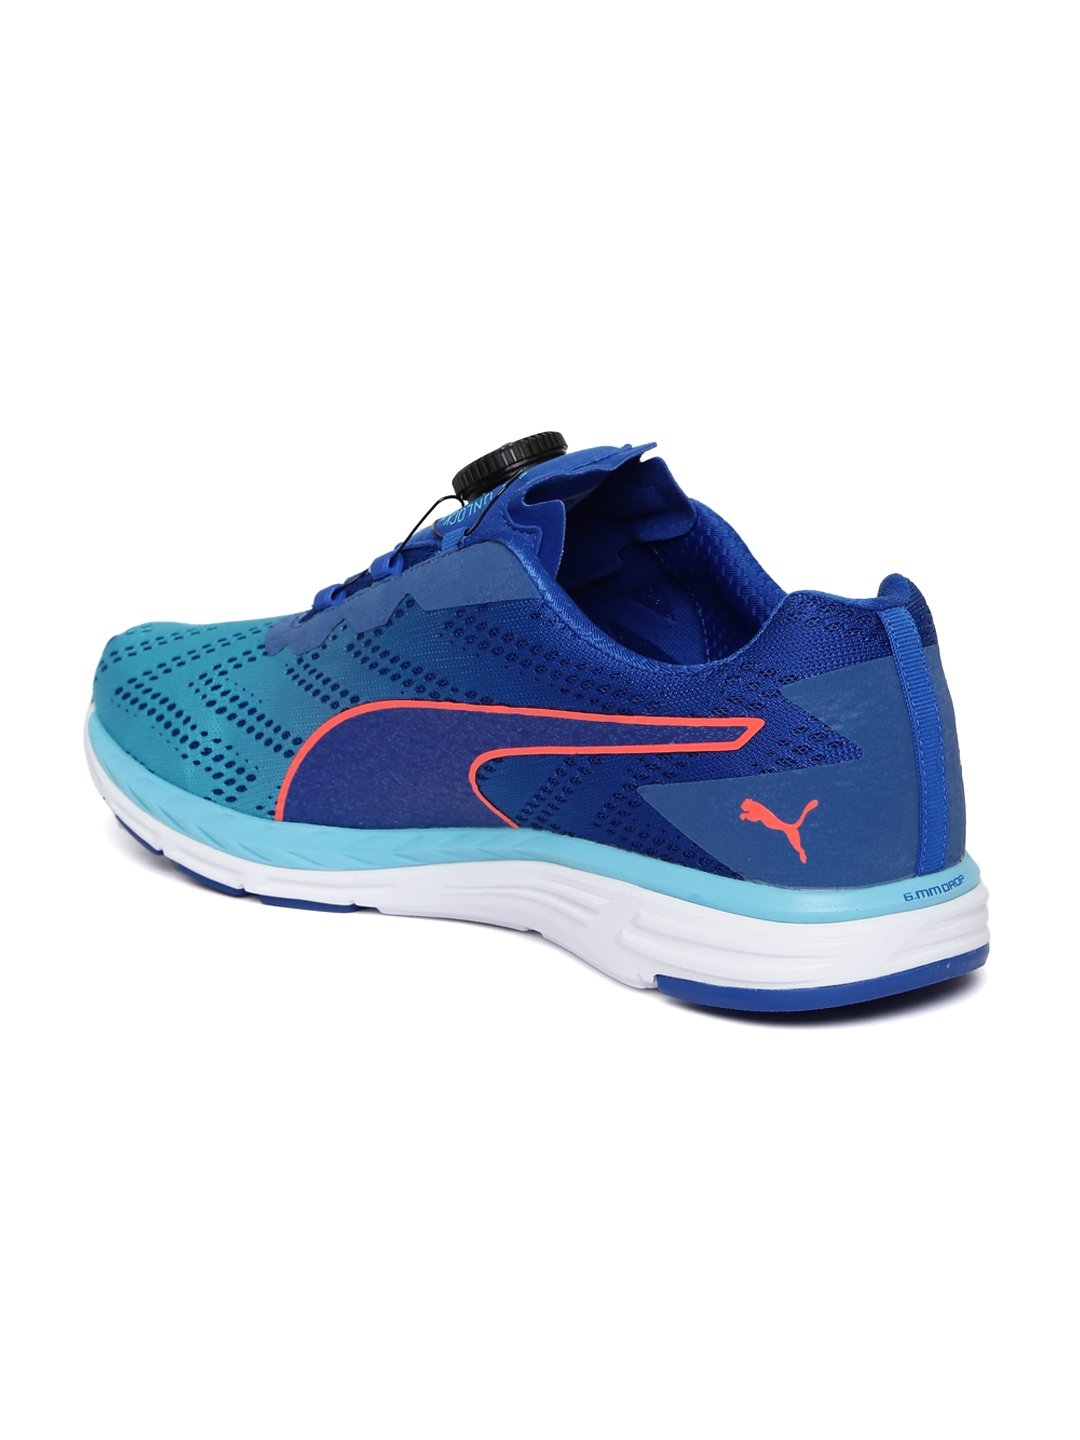 2bac4816b4c Puma Unisex Blue Speed 500 IGNITE DISC 2 Running Shoes